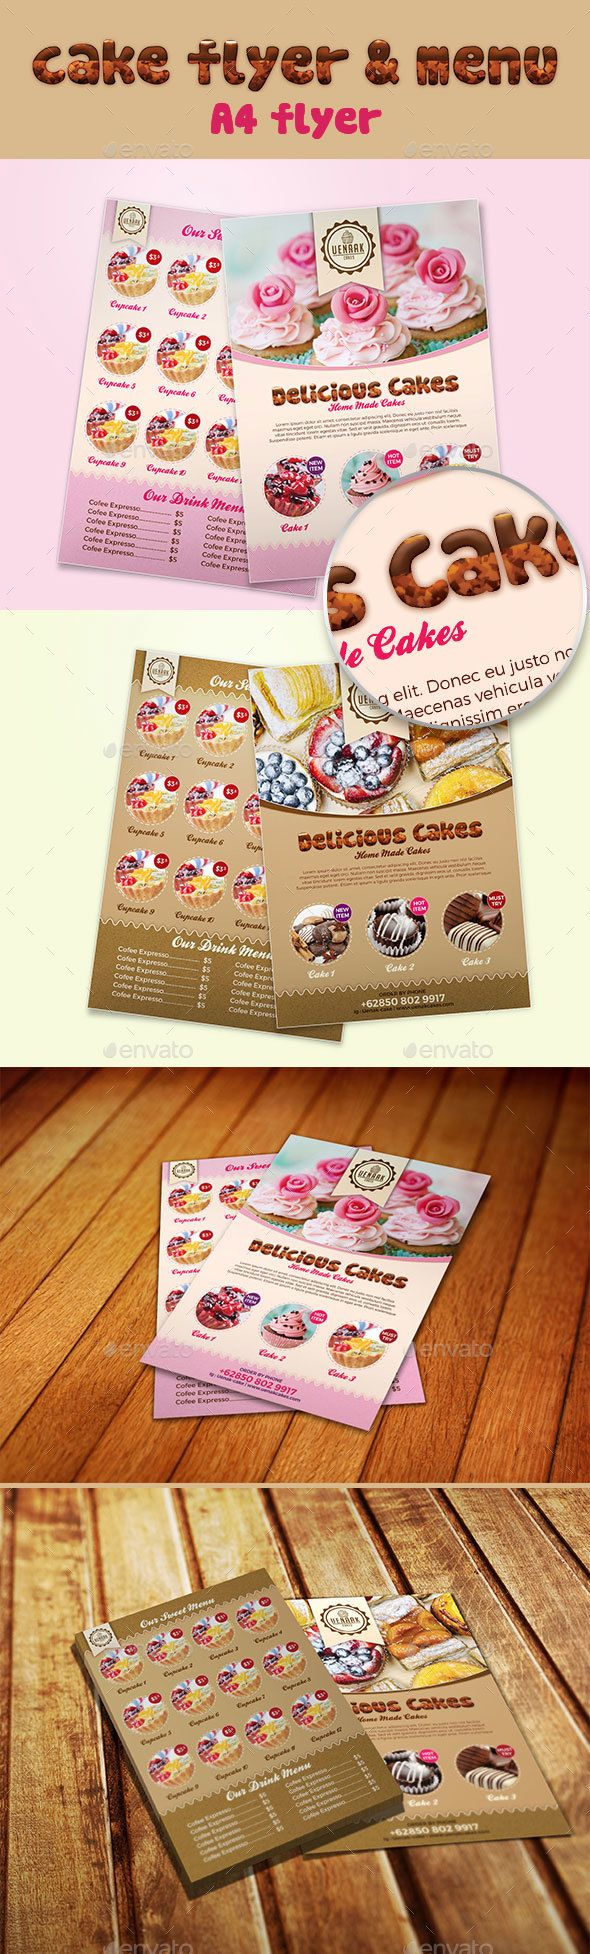 A4 Cake Flyer and Menu - Food Menus Print Templates Download here : https://graphicriver.net/item/a4-cake-flyer-and-menu/18071988?s_rank=140&ref=Al-fatih